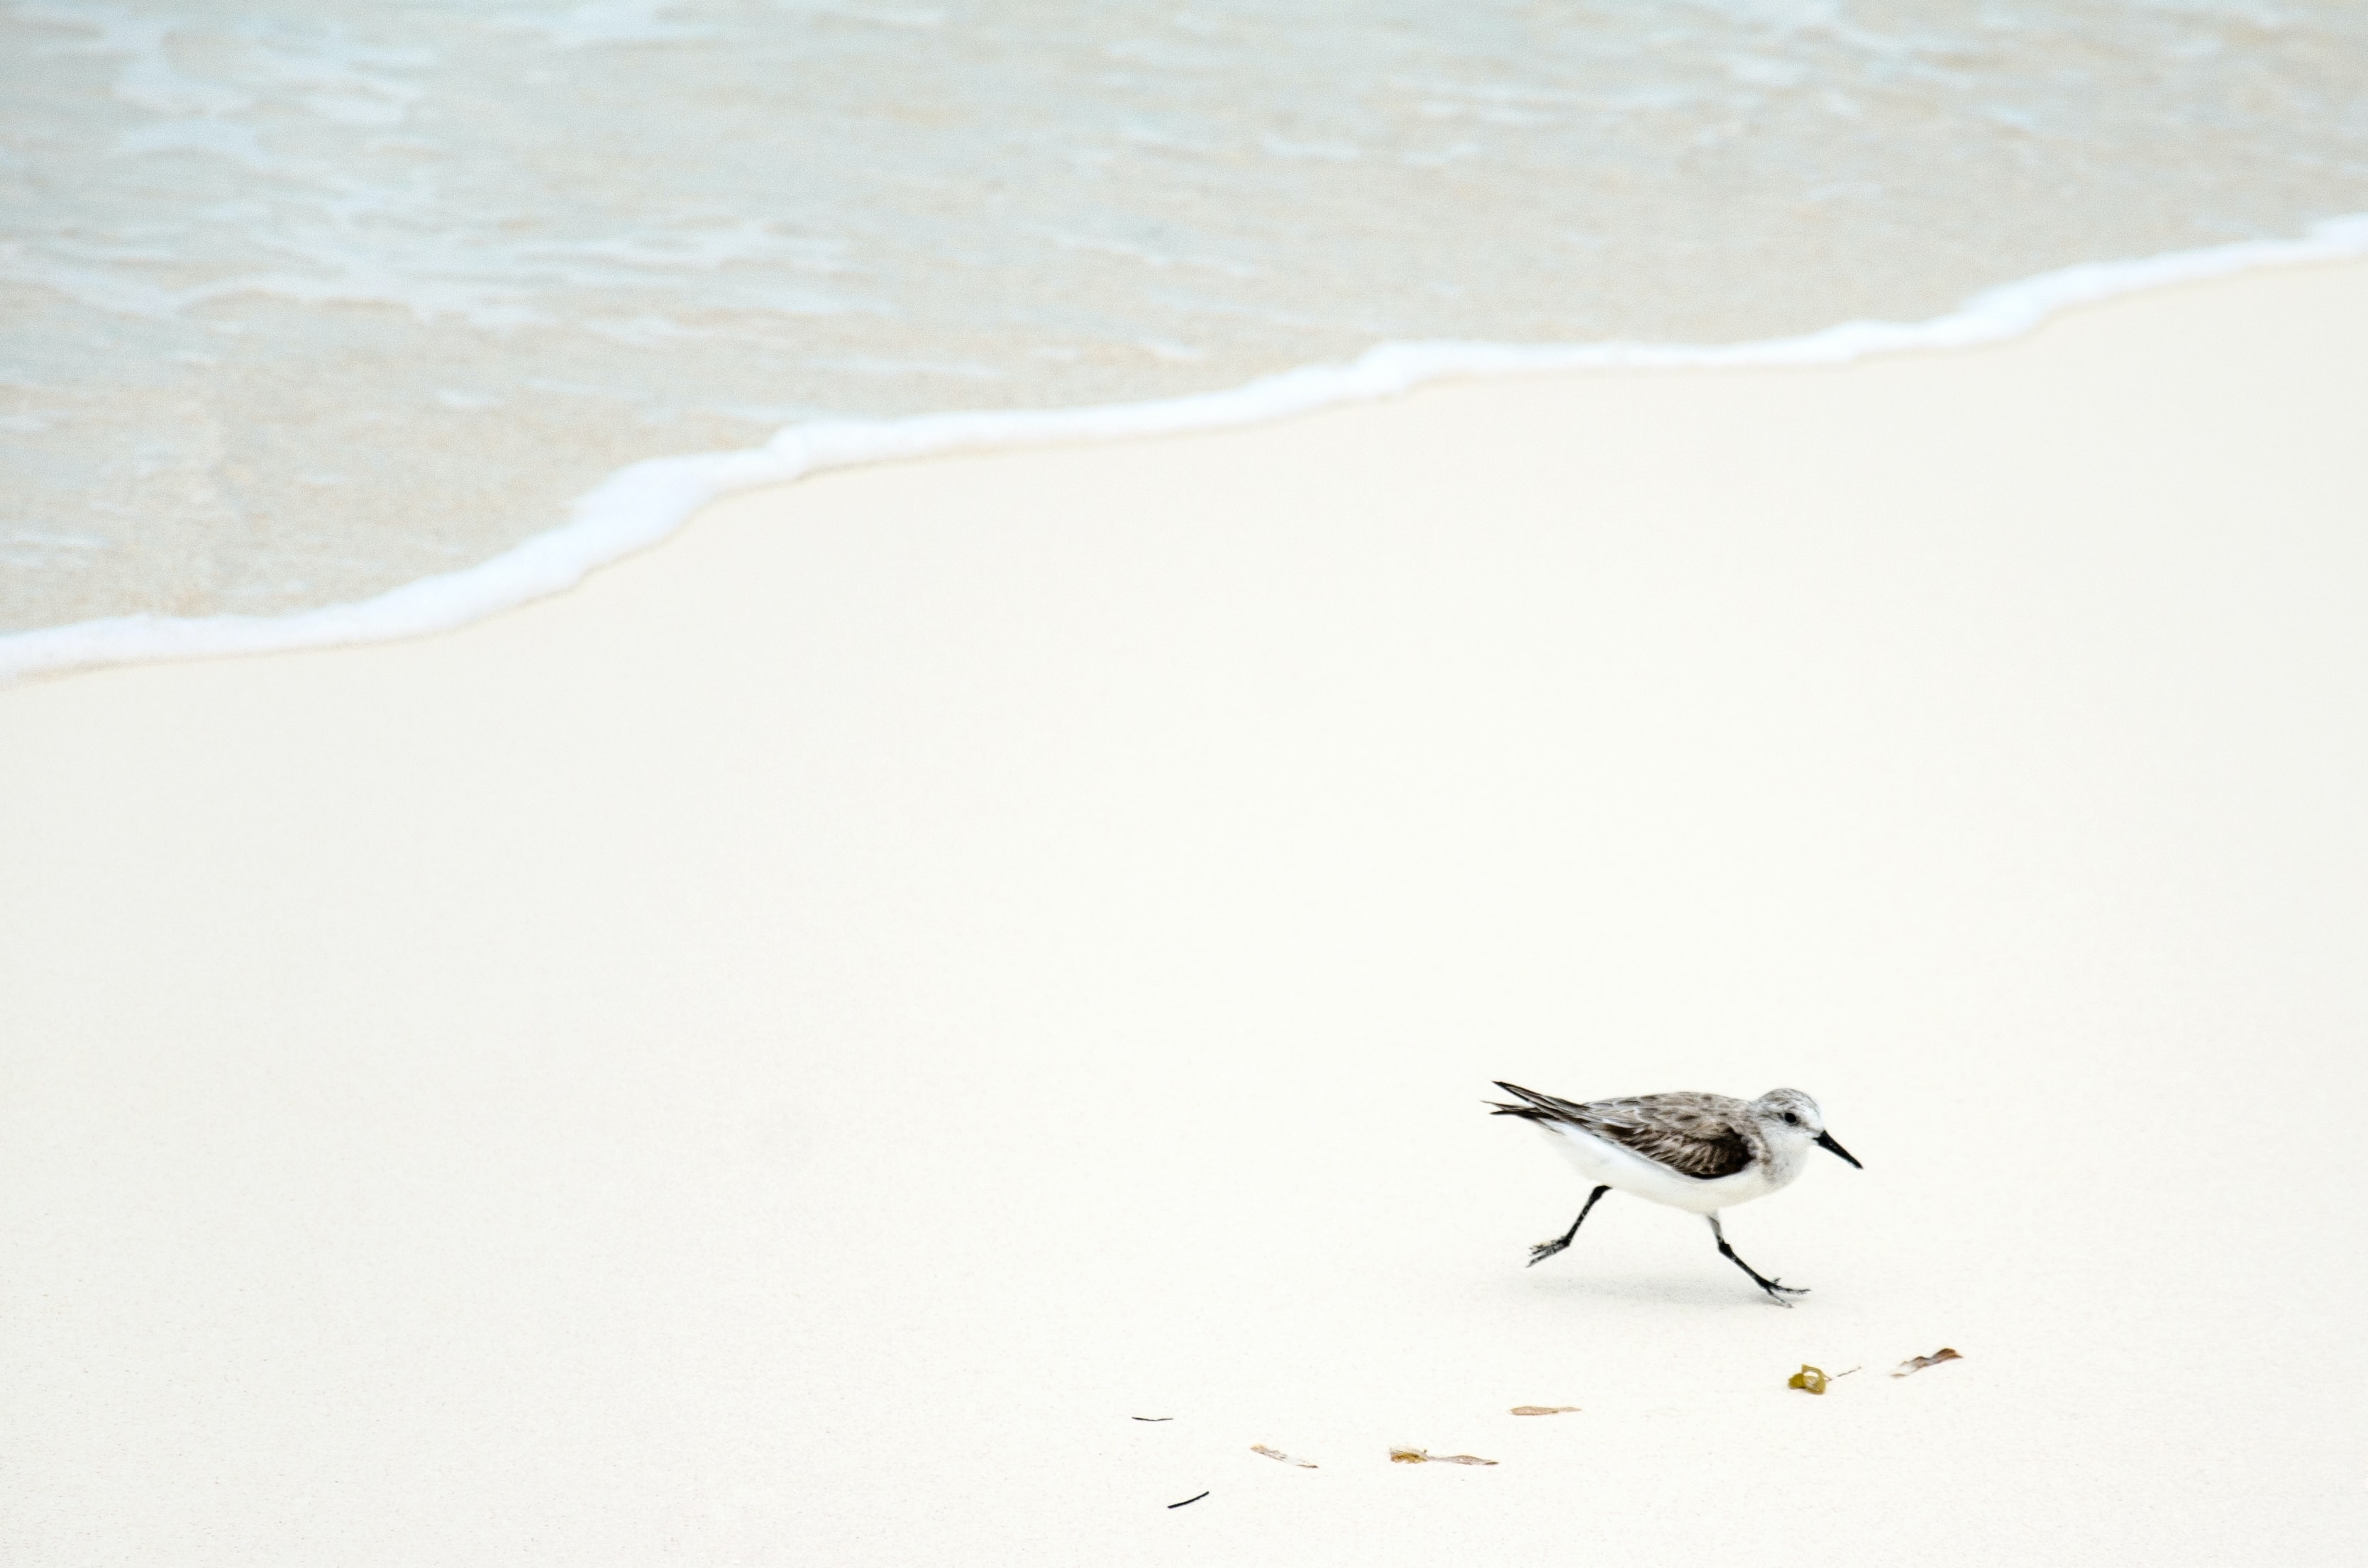 Bird on the white sand beach at Cayo Largo del Sur